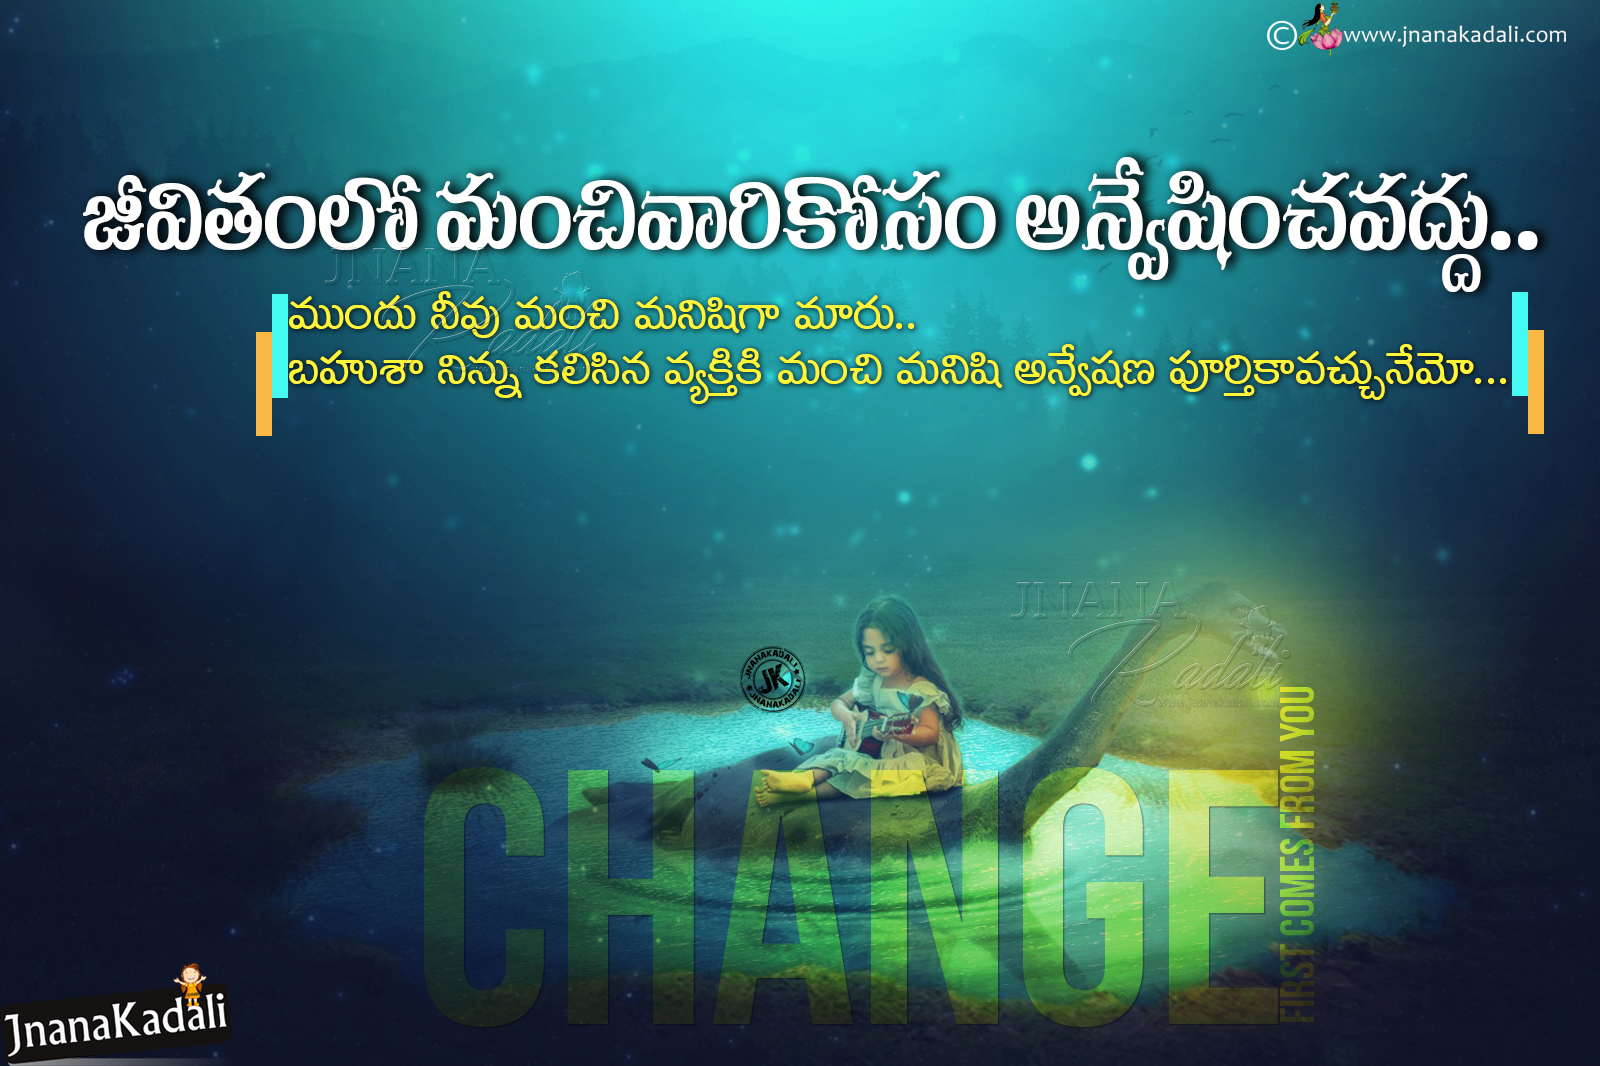 Motivational Quotes For Life Motivational Life Changing Quotes In Telugupersonality